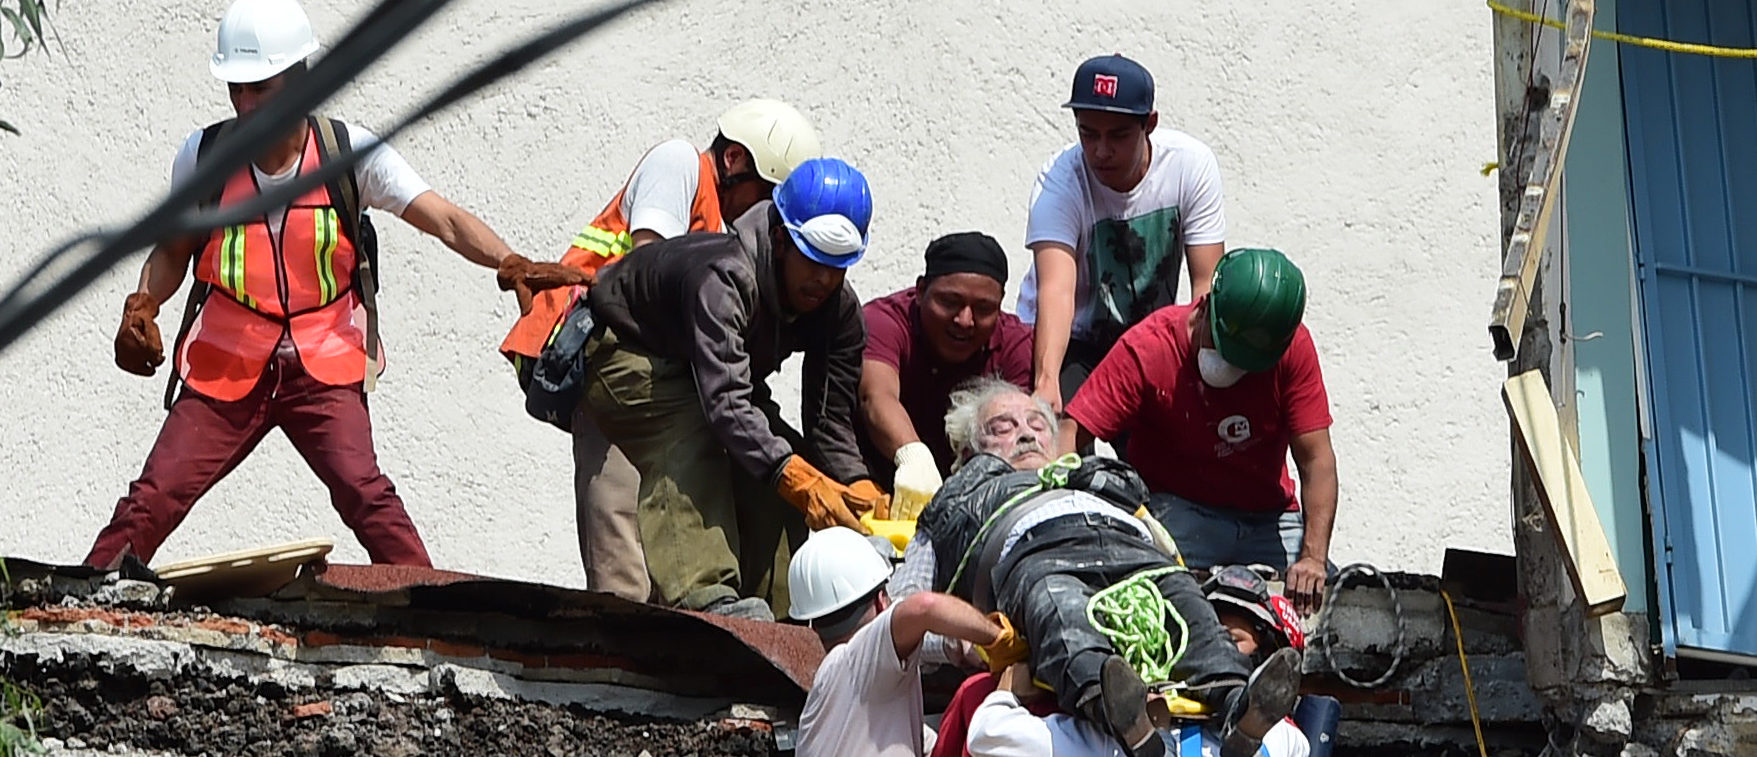 A man is pulled out of the rubble alive following a quake in Mexico City on September 19, 2017.